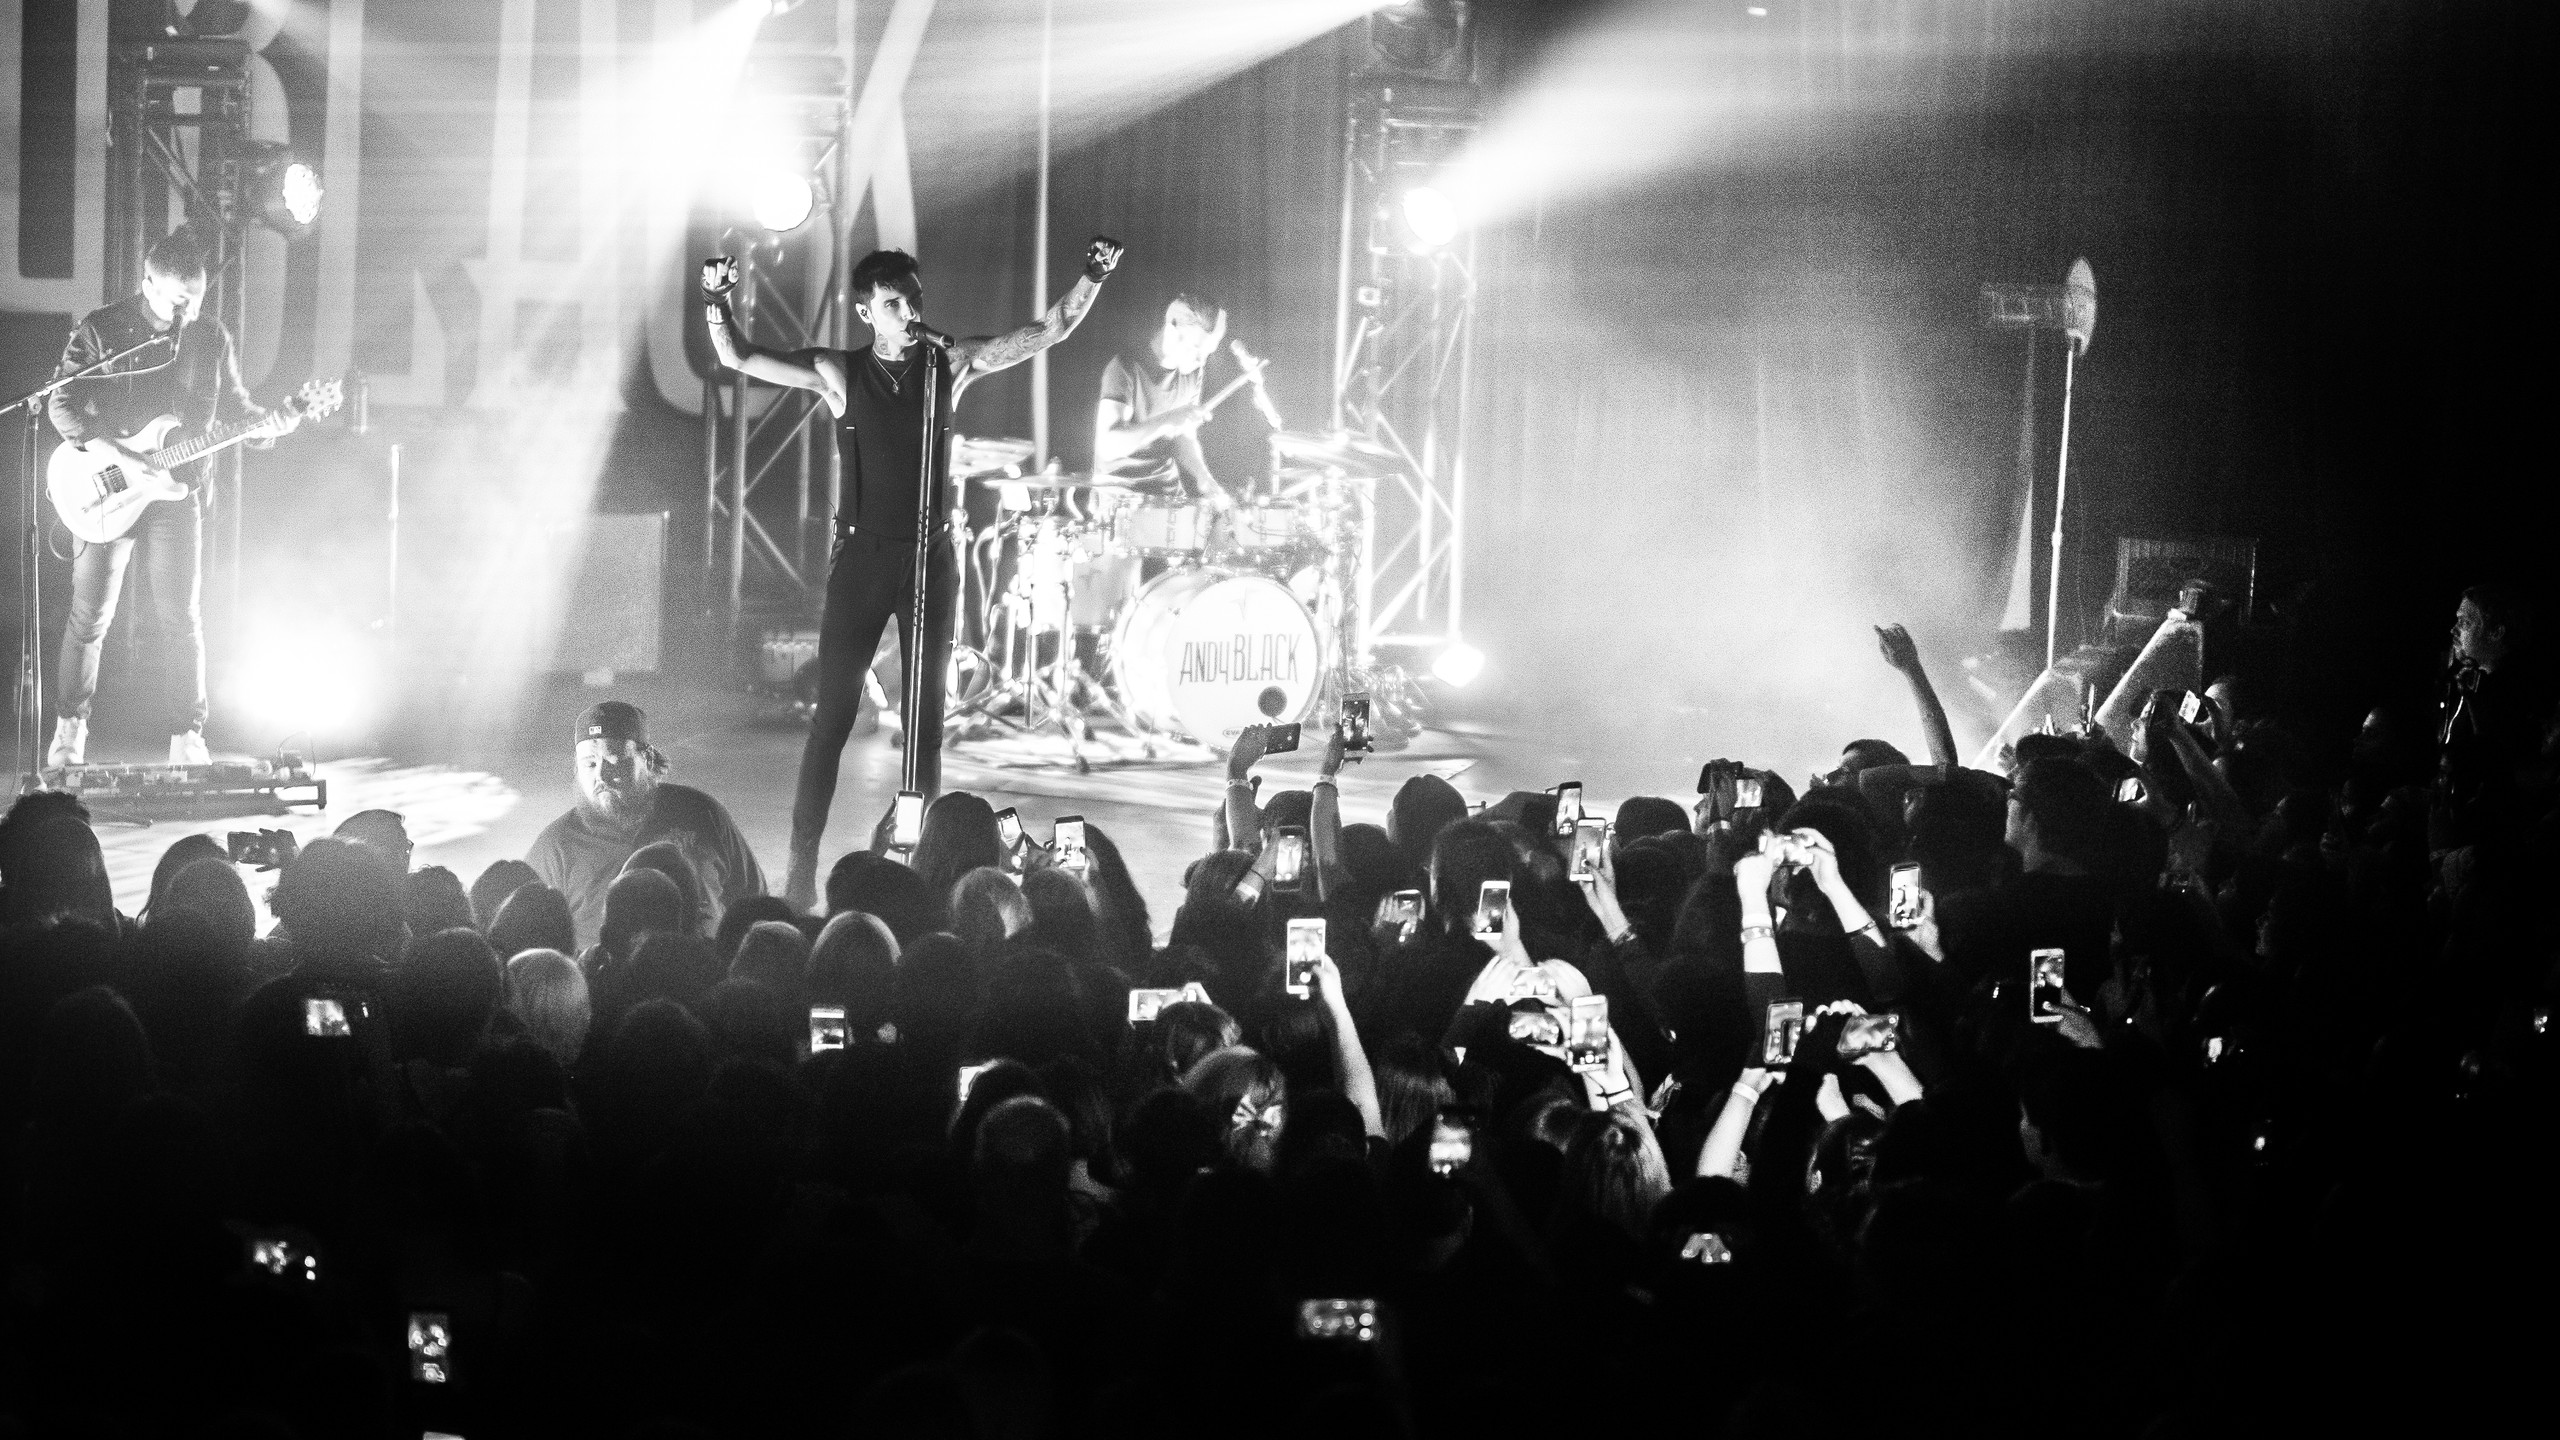 2017-03-03 Andy Black - Pomona - Glass House - NO THUMB-41